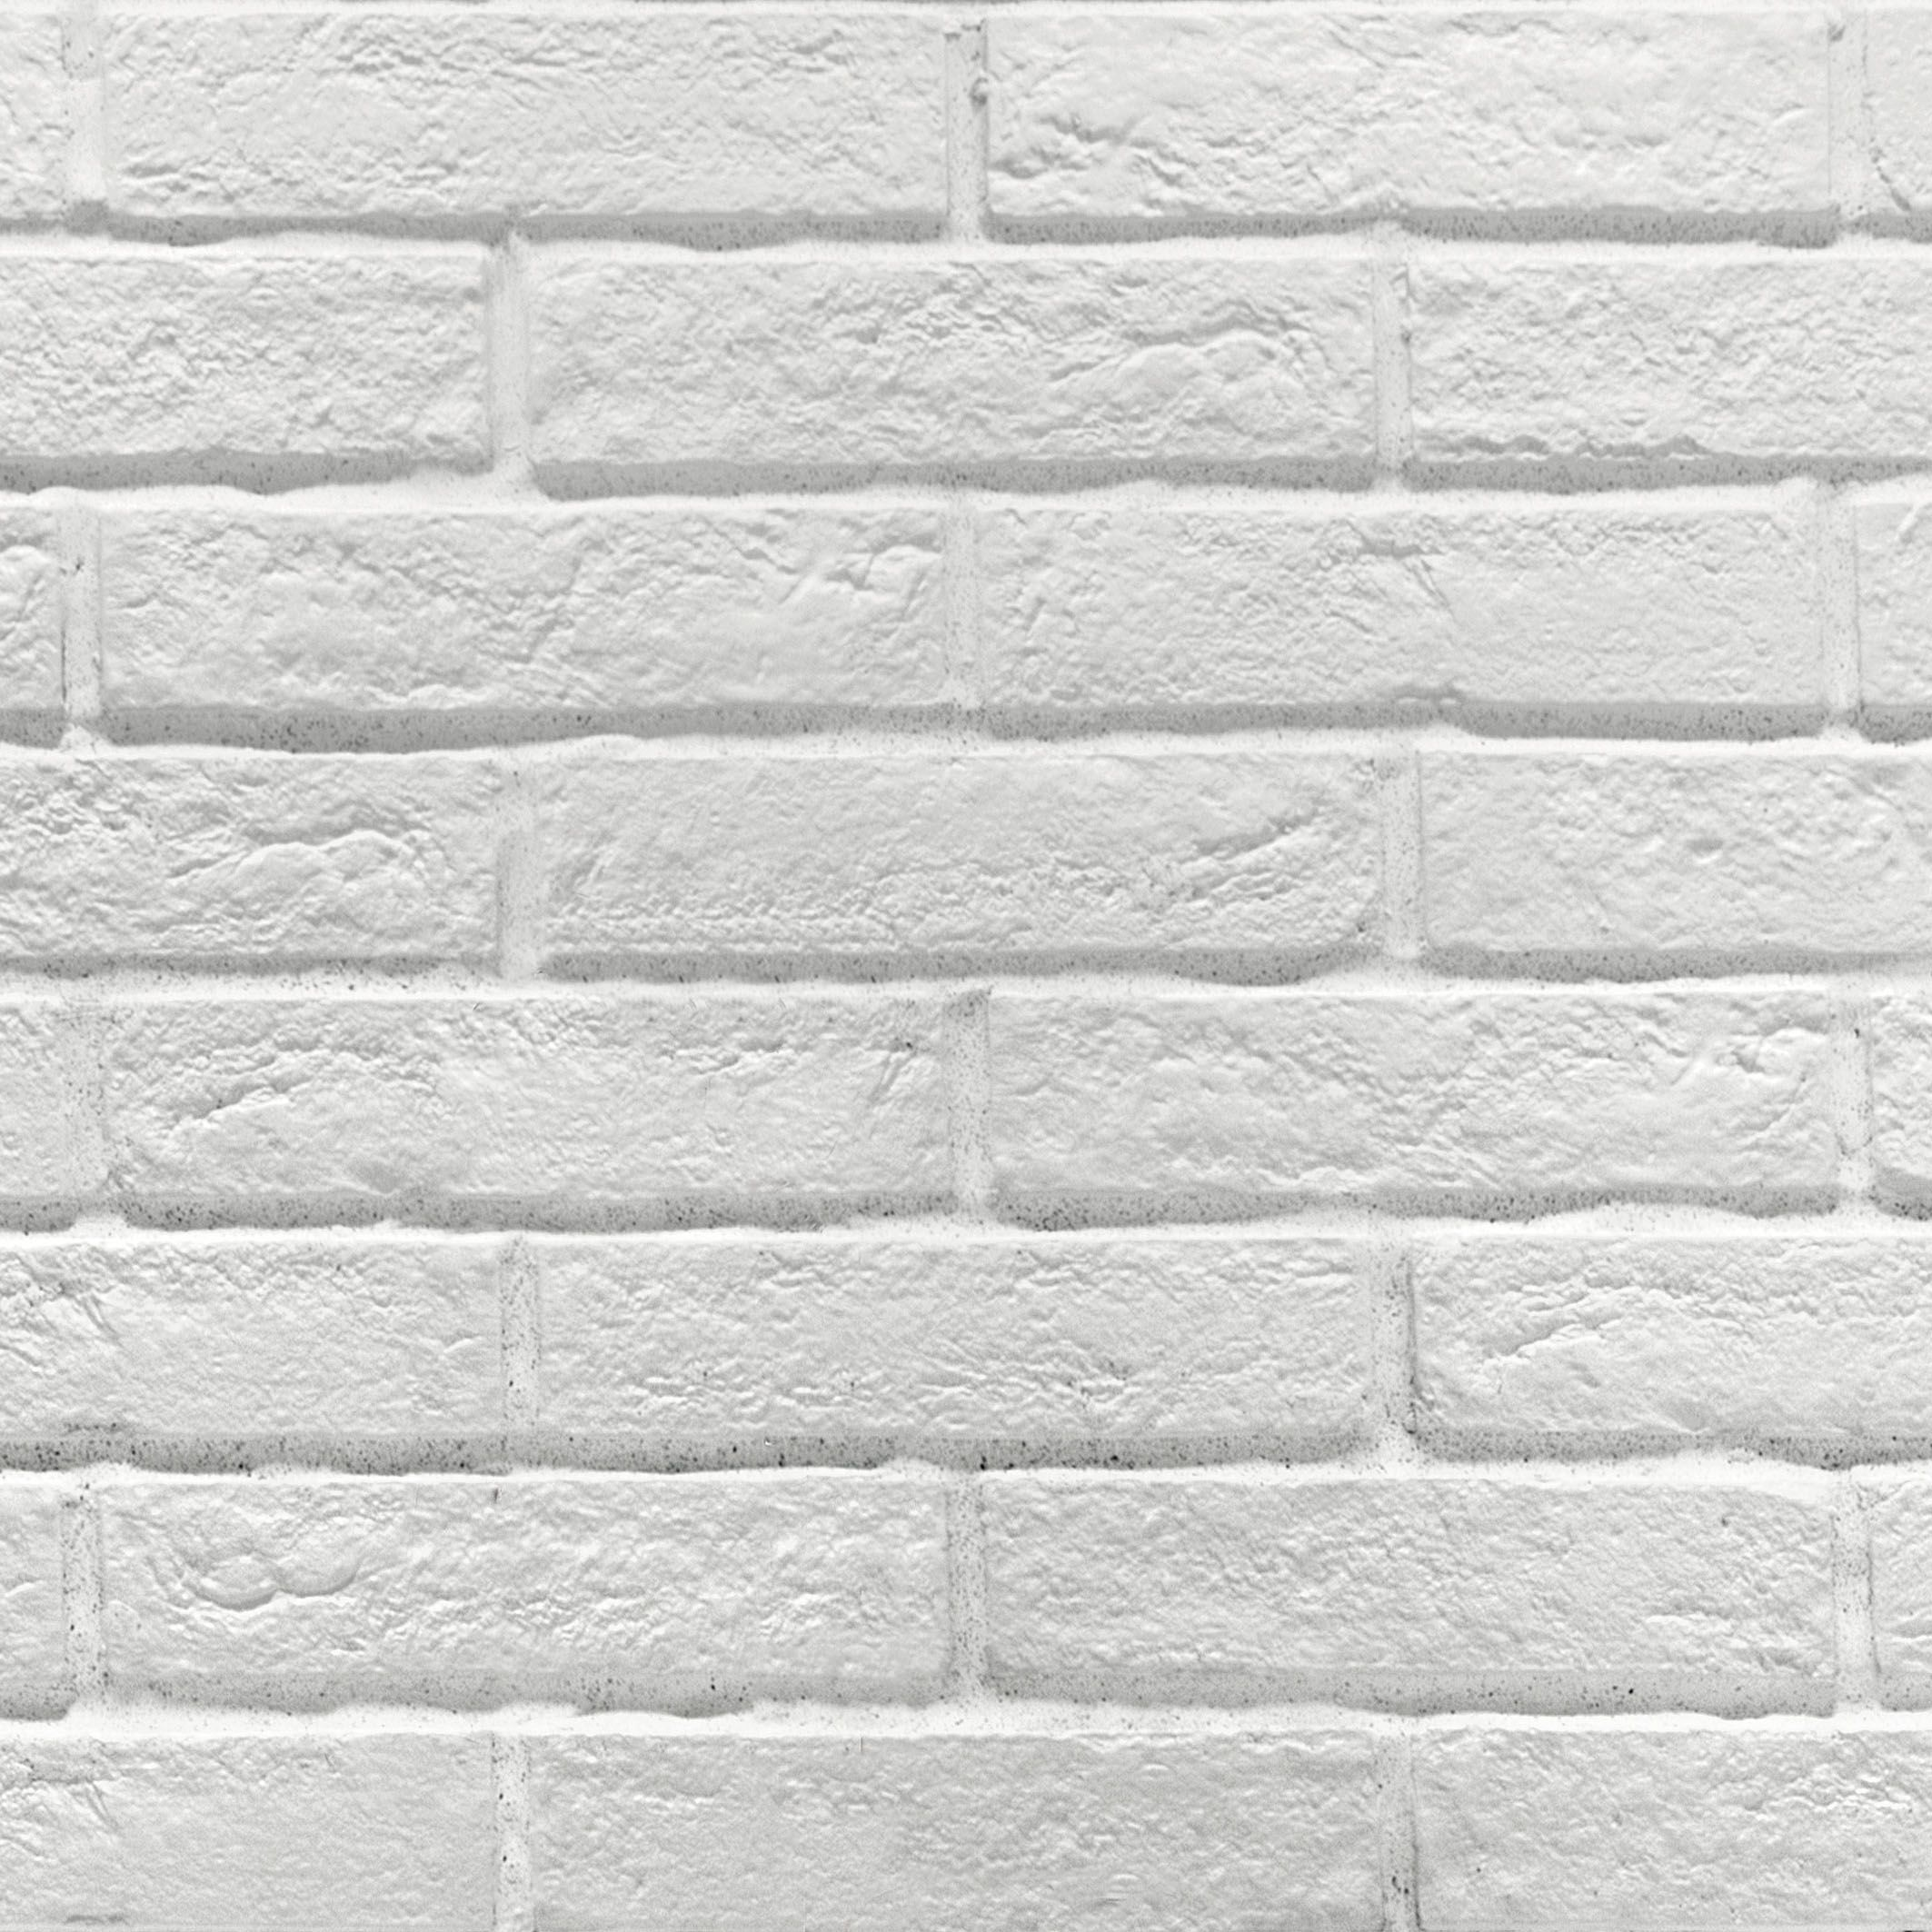 Rondine New York Brick Tile Google Search White Tiles Look